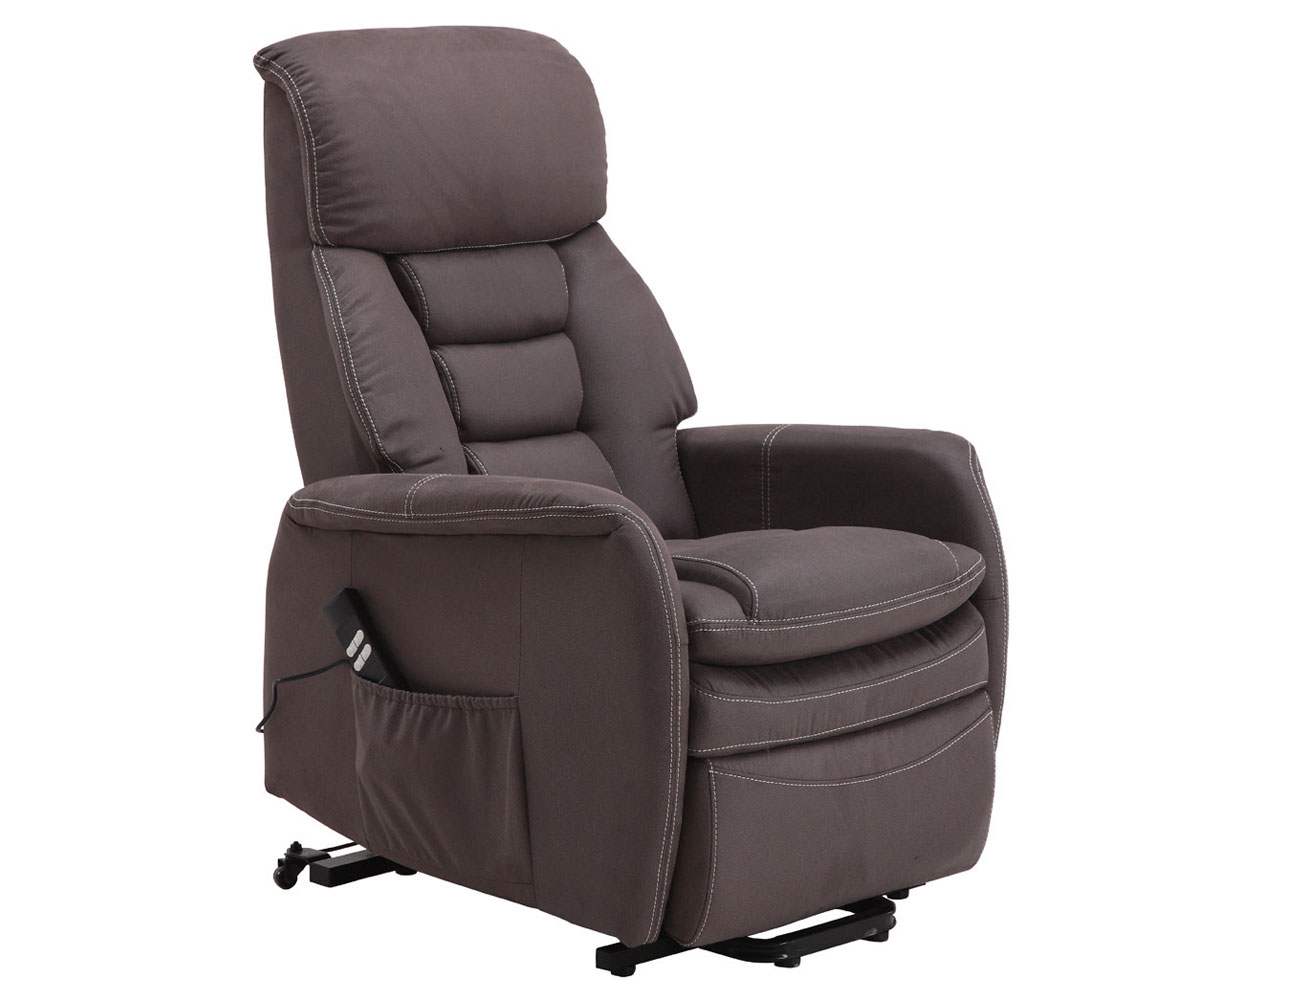 Sillon power lift levanta personas 2 motores 2